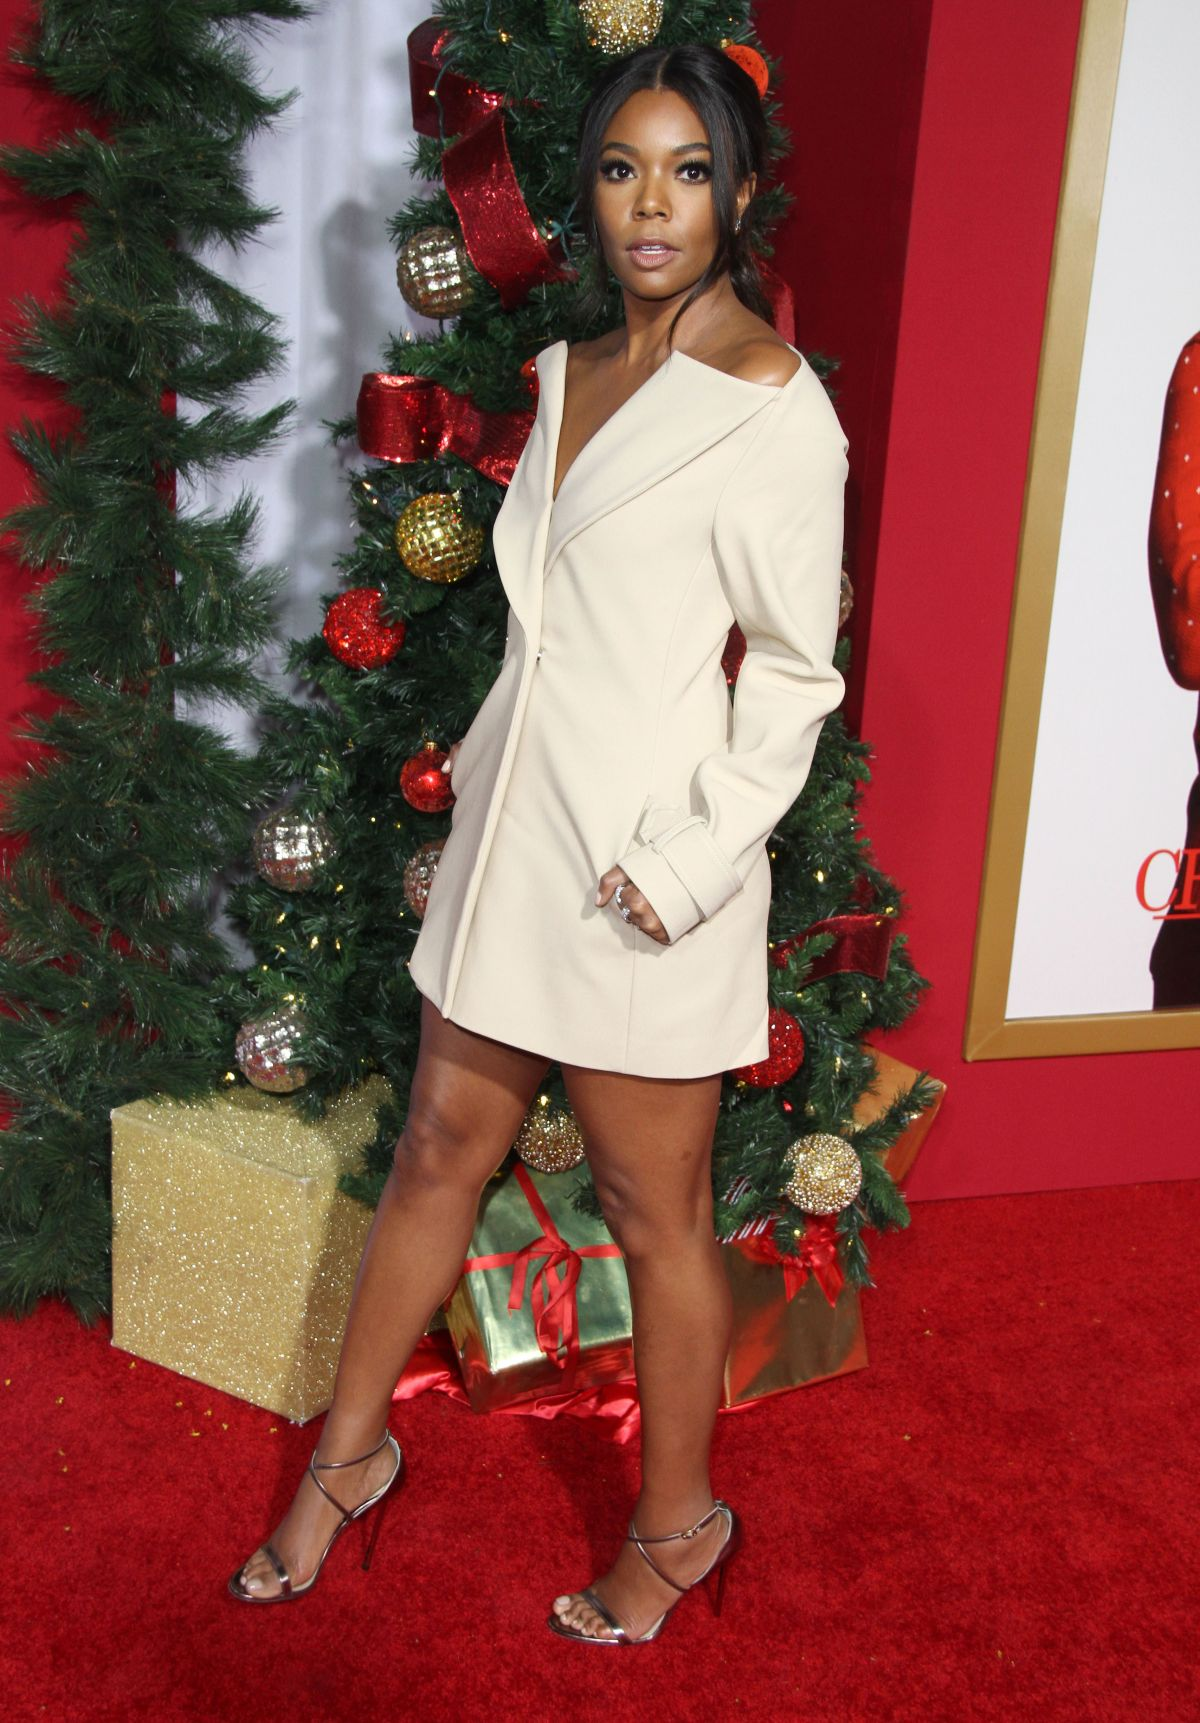 Almost Christmas Gabrielle Union.Gabrielle Union At Almost Christmas Premiere In Westwood